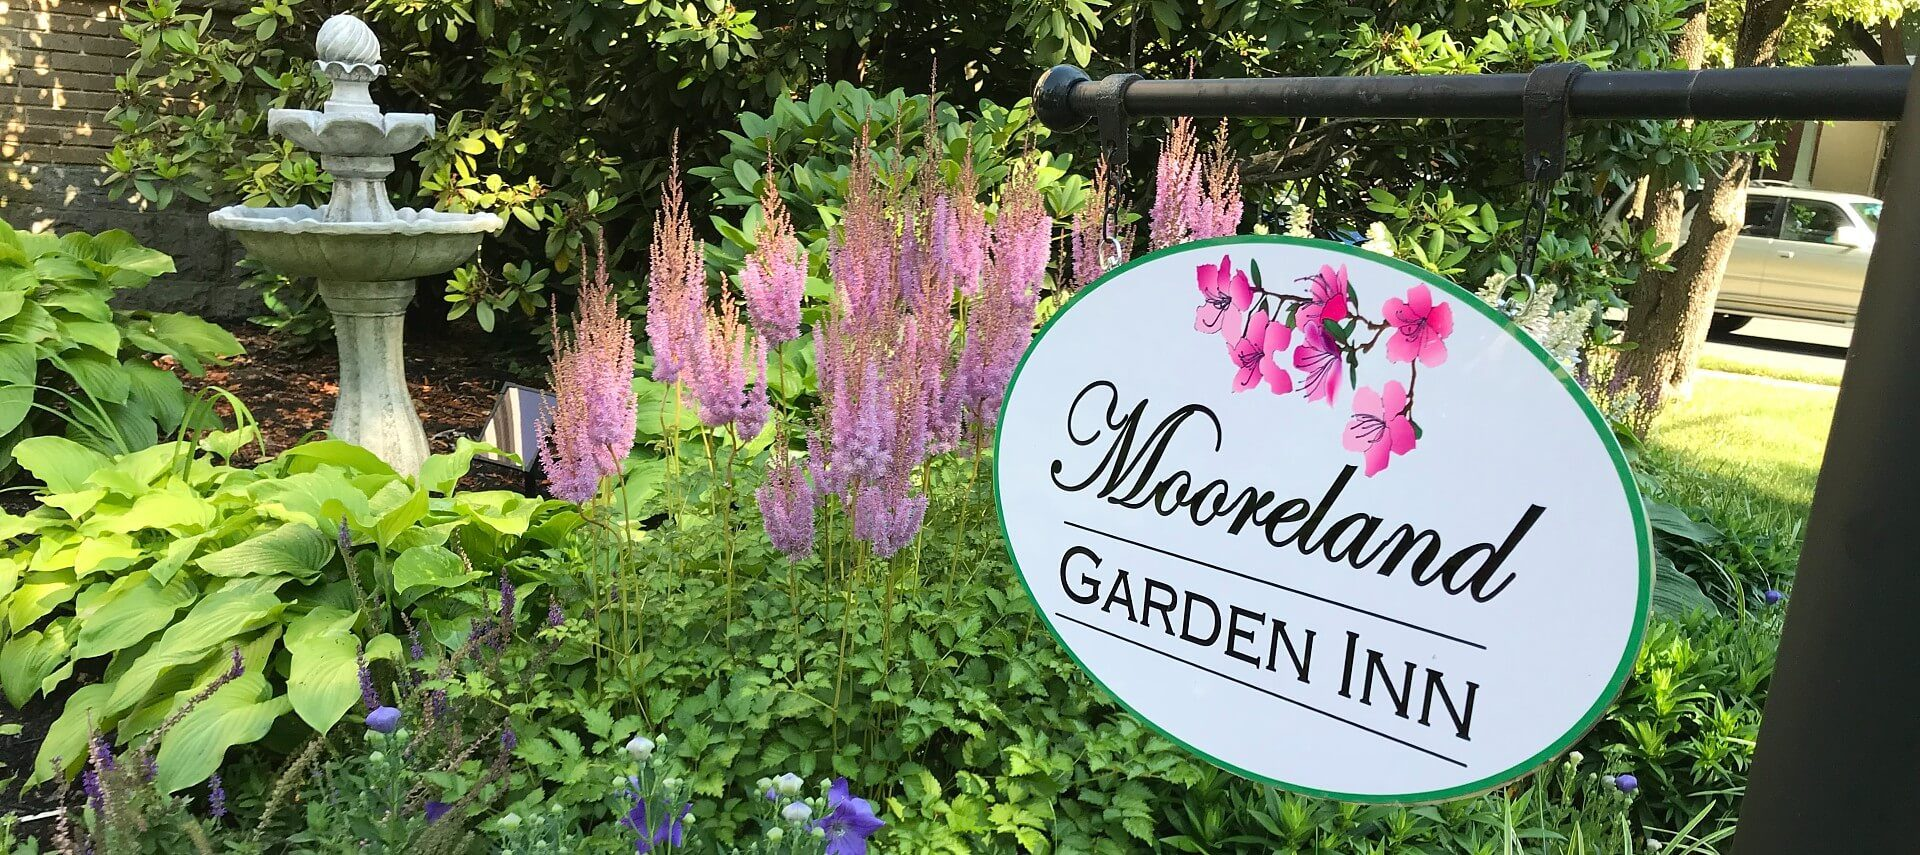 White oval business sign hanging on a black frame over a lush garden bed of flowers and water fountain